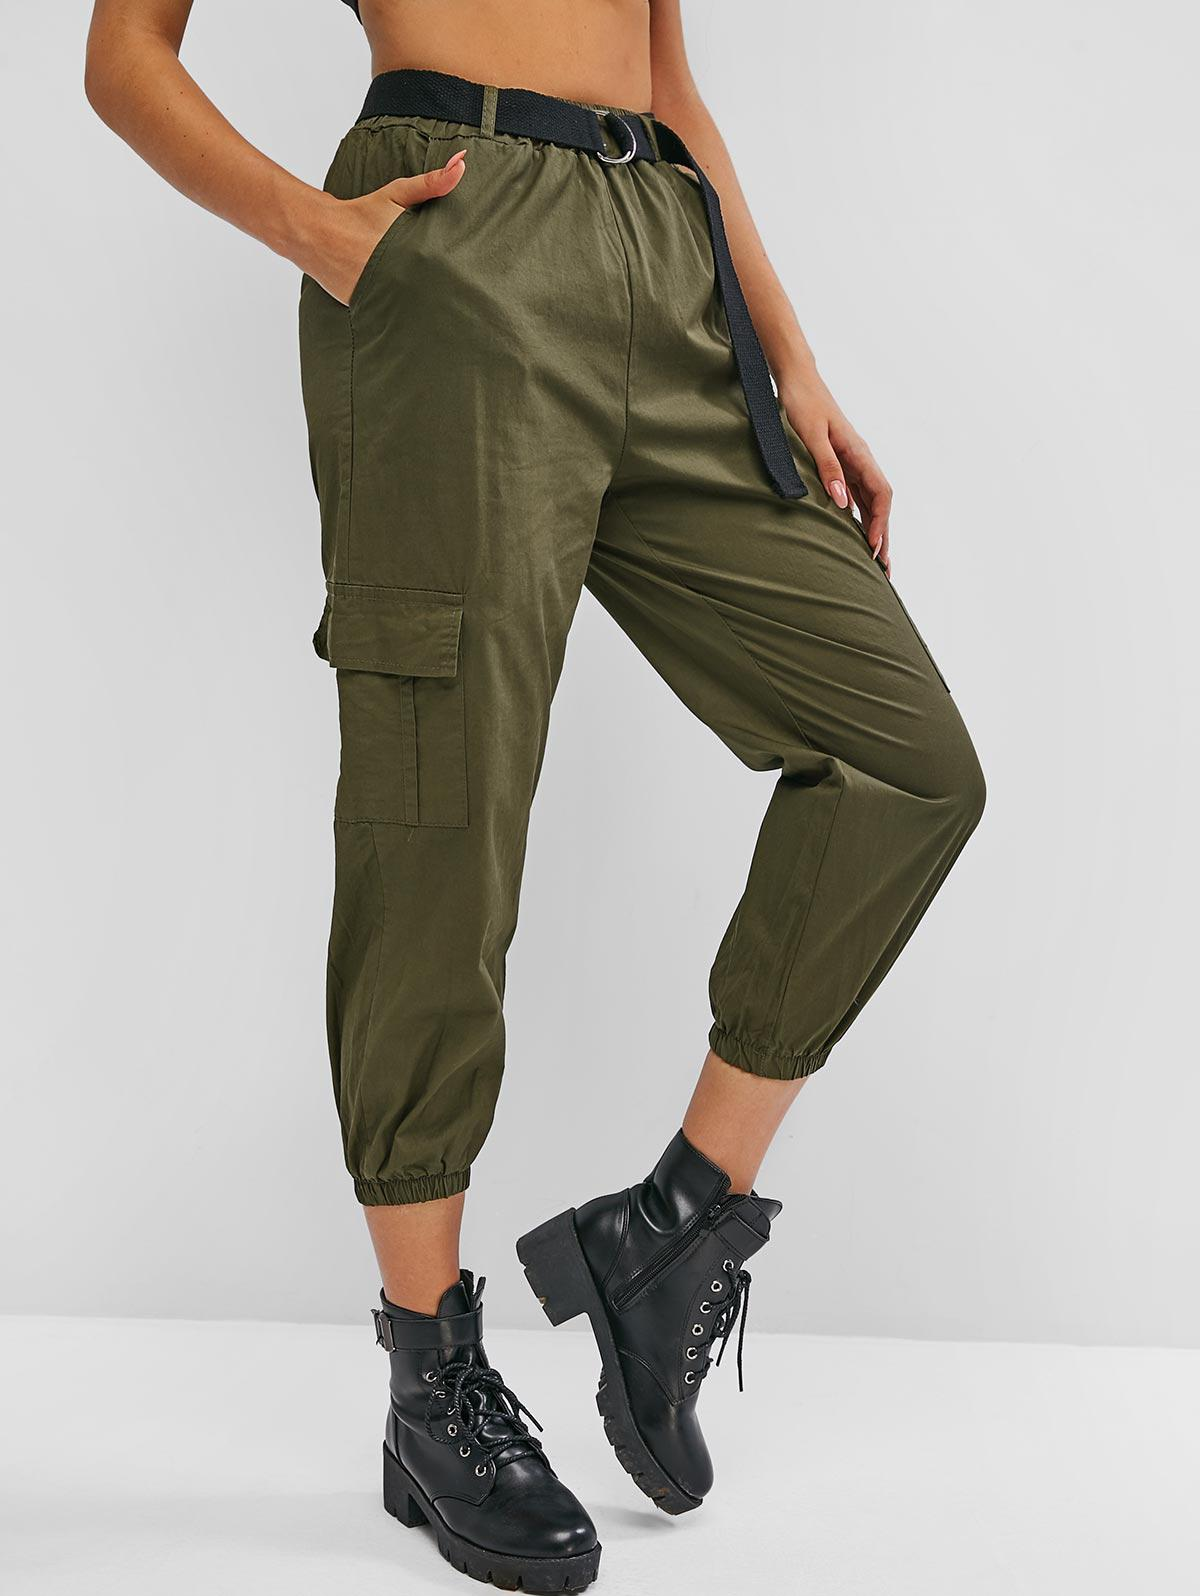 Flap Pockets Buckle Belted Cargo Pants